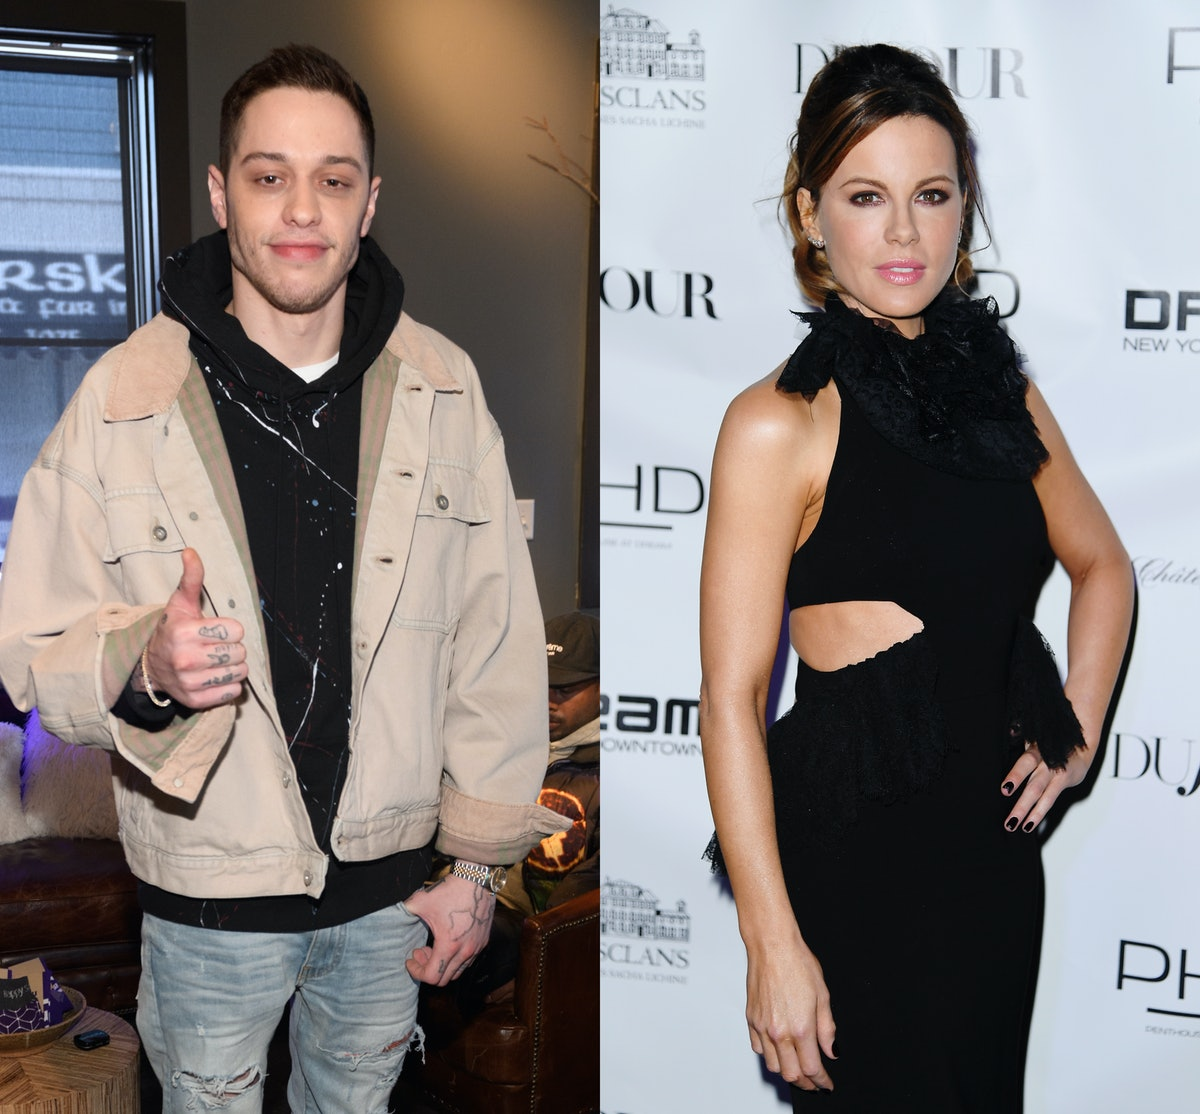 Pete Davidson & Kate Beckinsale Were Spotted Out Again, Suggesting They're Still Going Strong